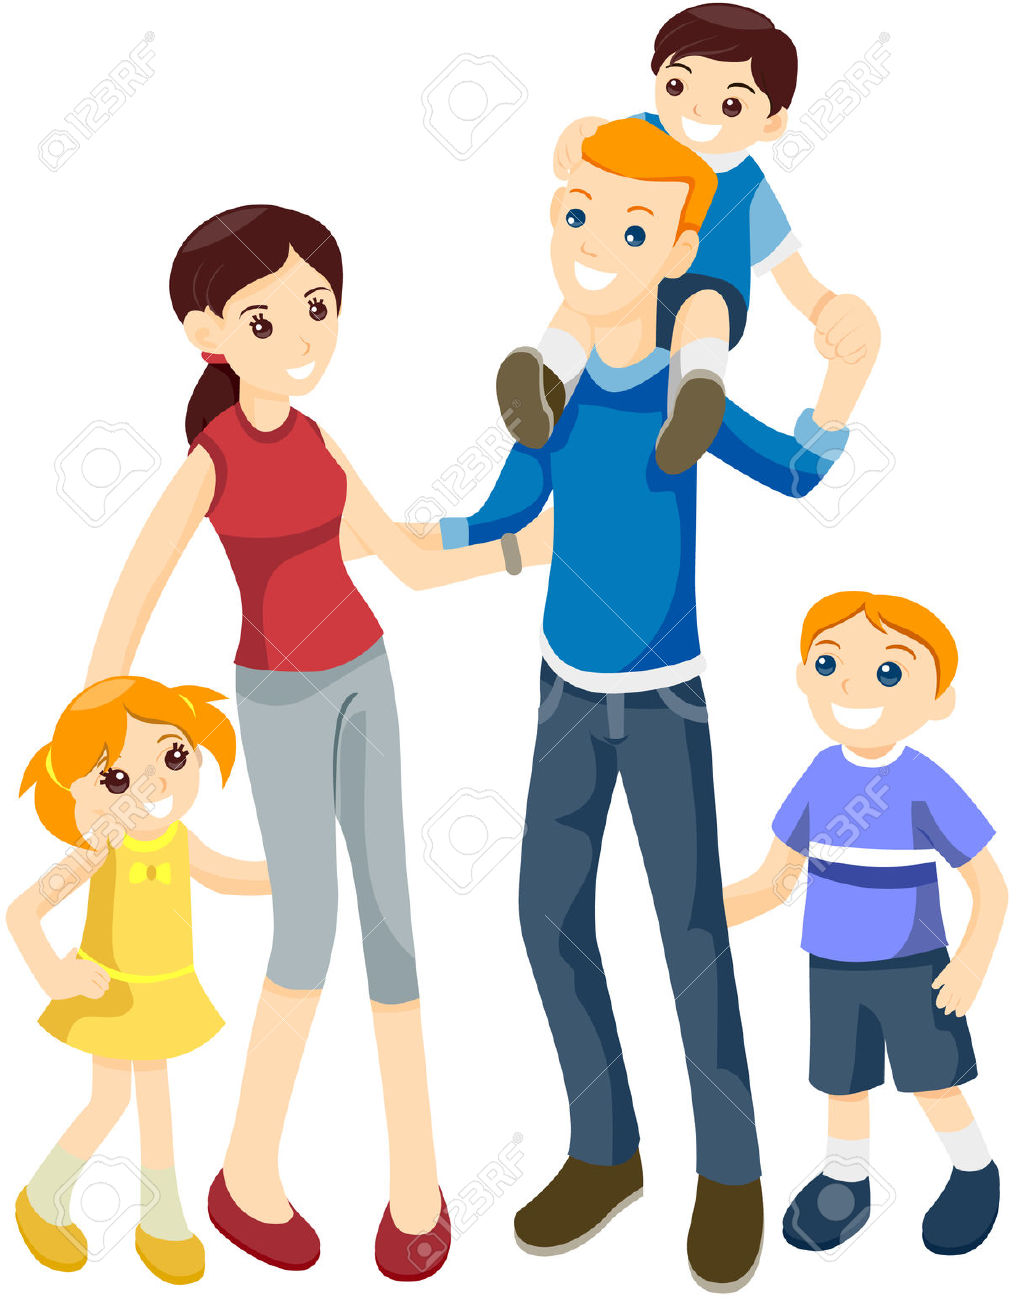 Images of families clipart image stock 62+ Happy Family Clipart | ClipartLook image stock